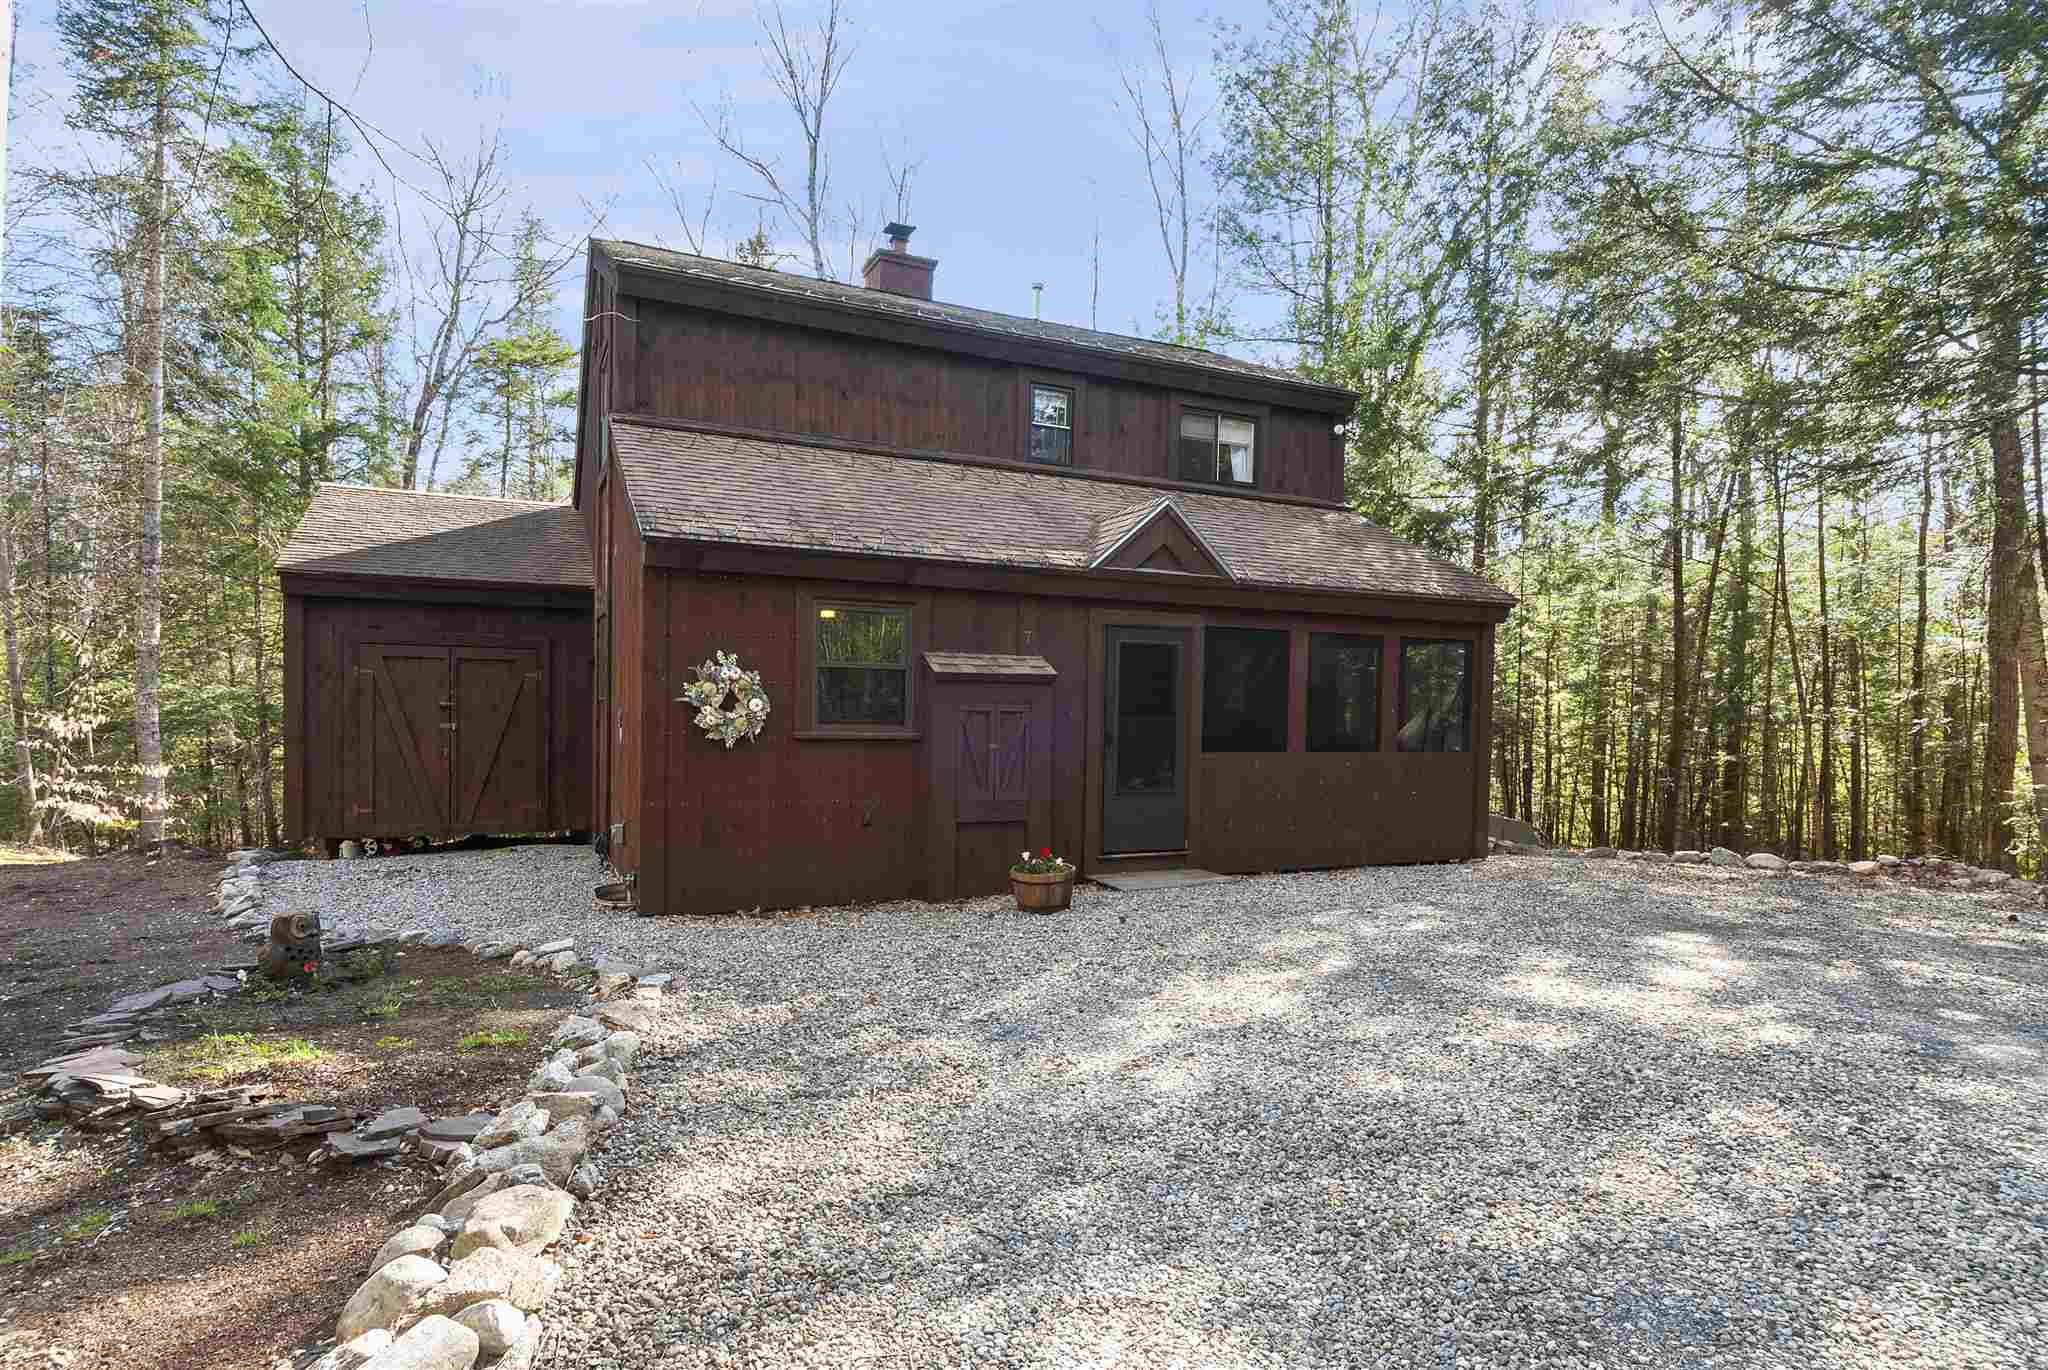 VILLAGE OF EASTMAN IN TOWN OF ENFIELD NHHomes for sale